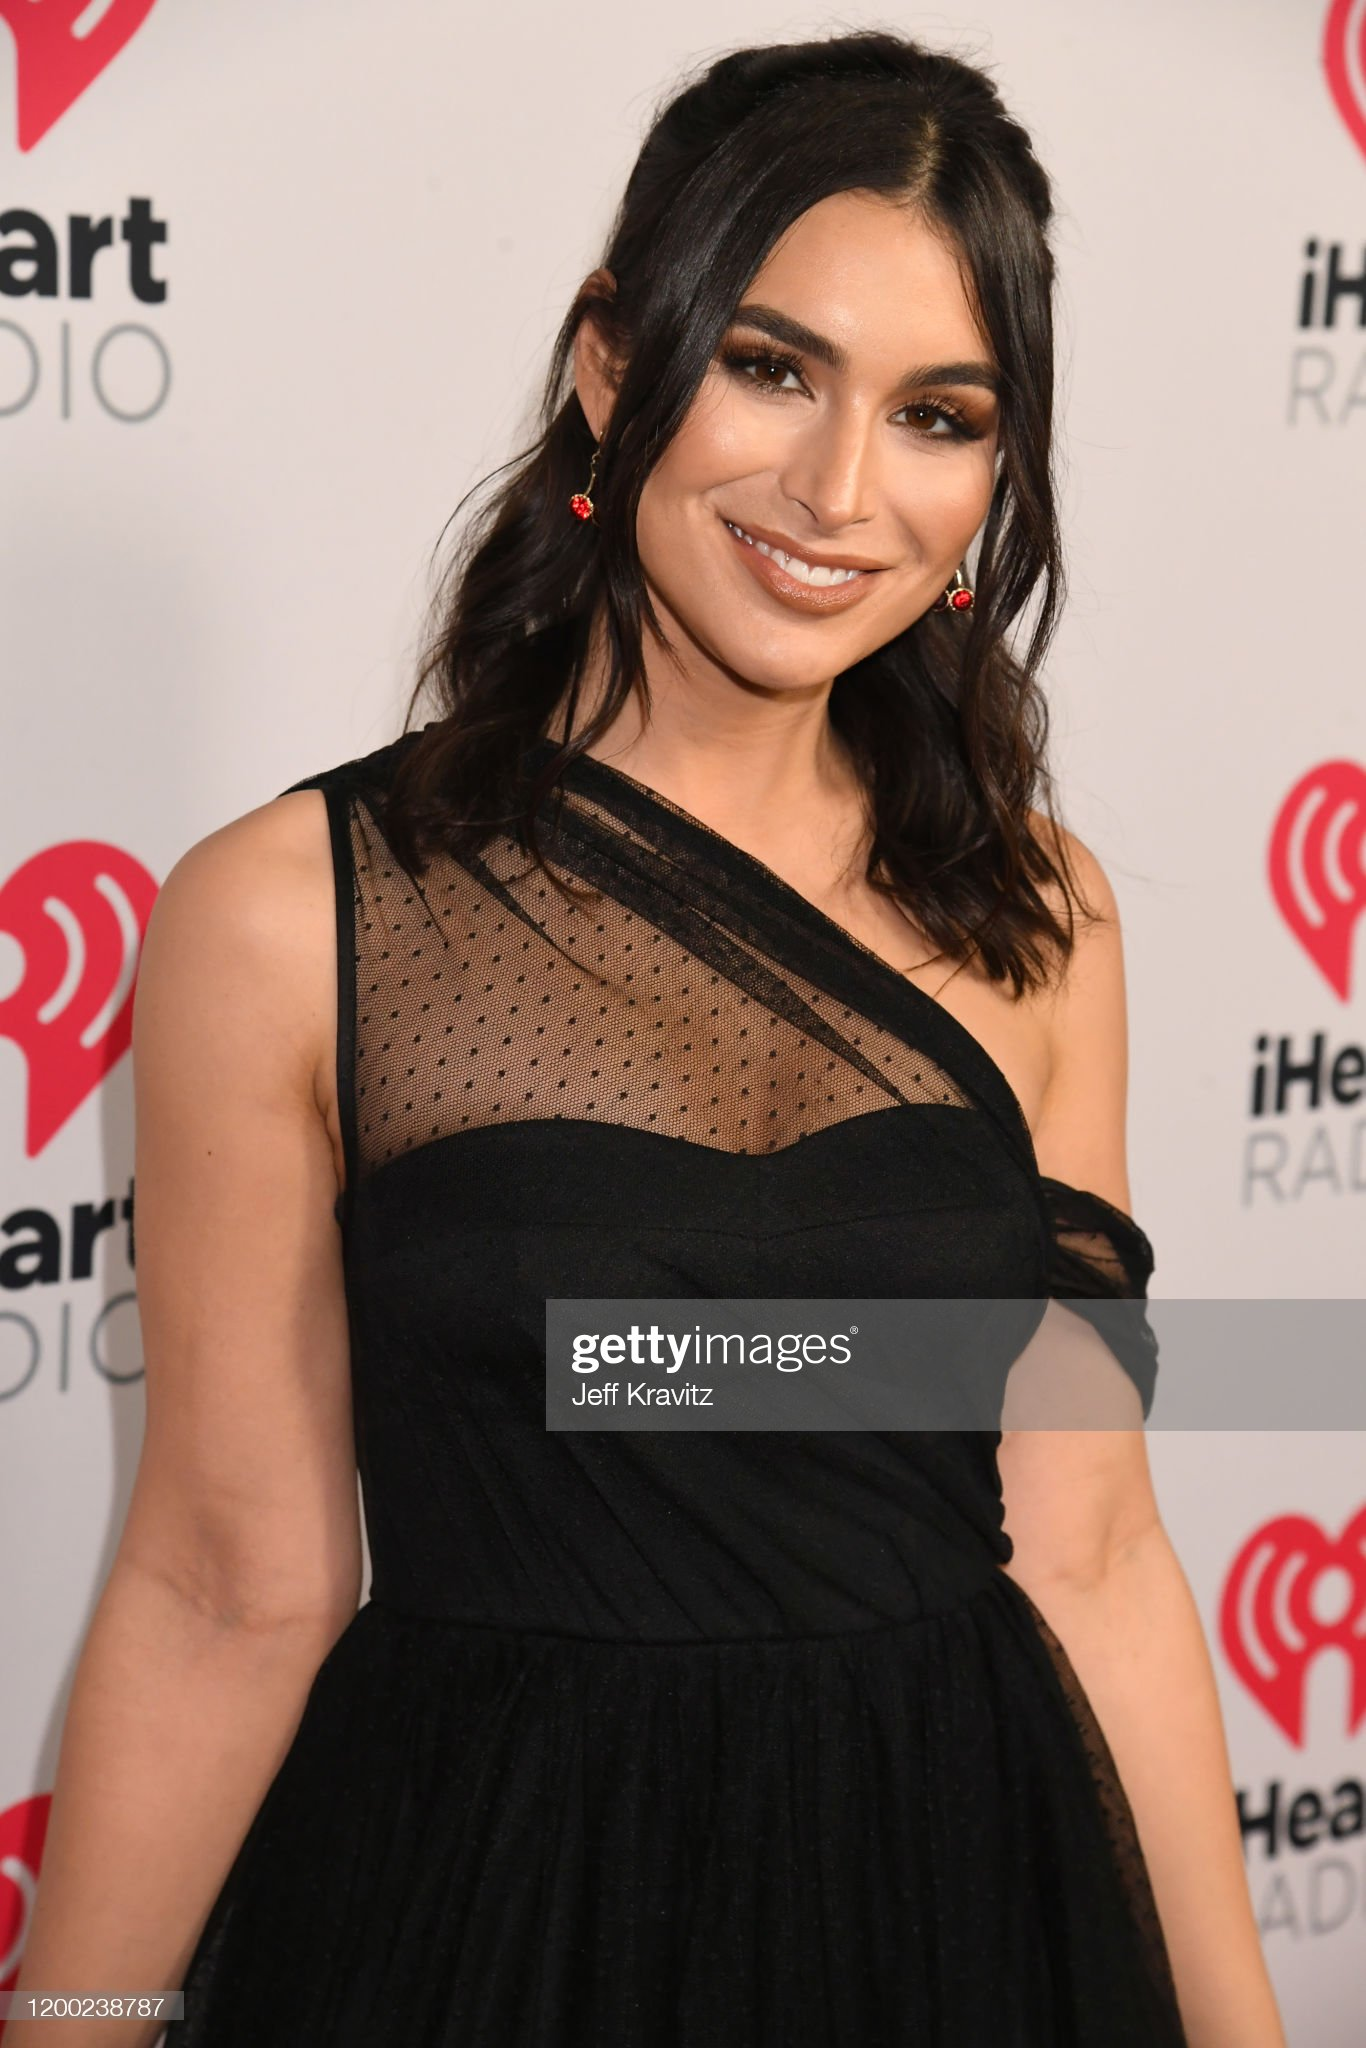 Ashley Iaconetti Haibon & Jared Haibon - Discussion - Page 62 Ashley-iaconetti-haibon-attends-the-2020-iheartradio-podcast-awards-picture-id1200238787?s=2048x2048